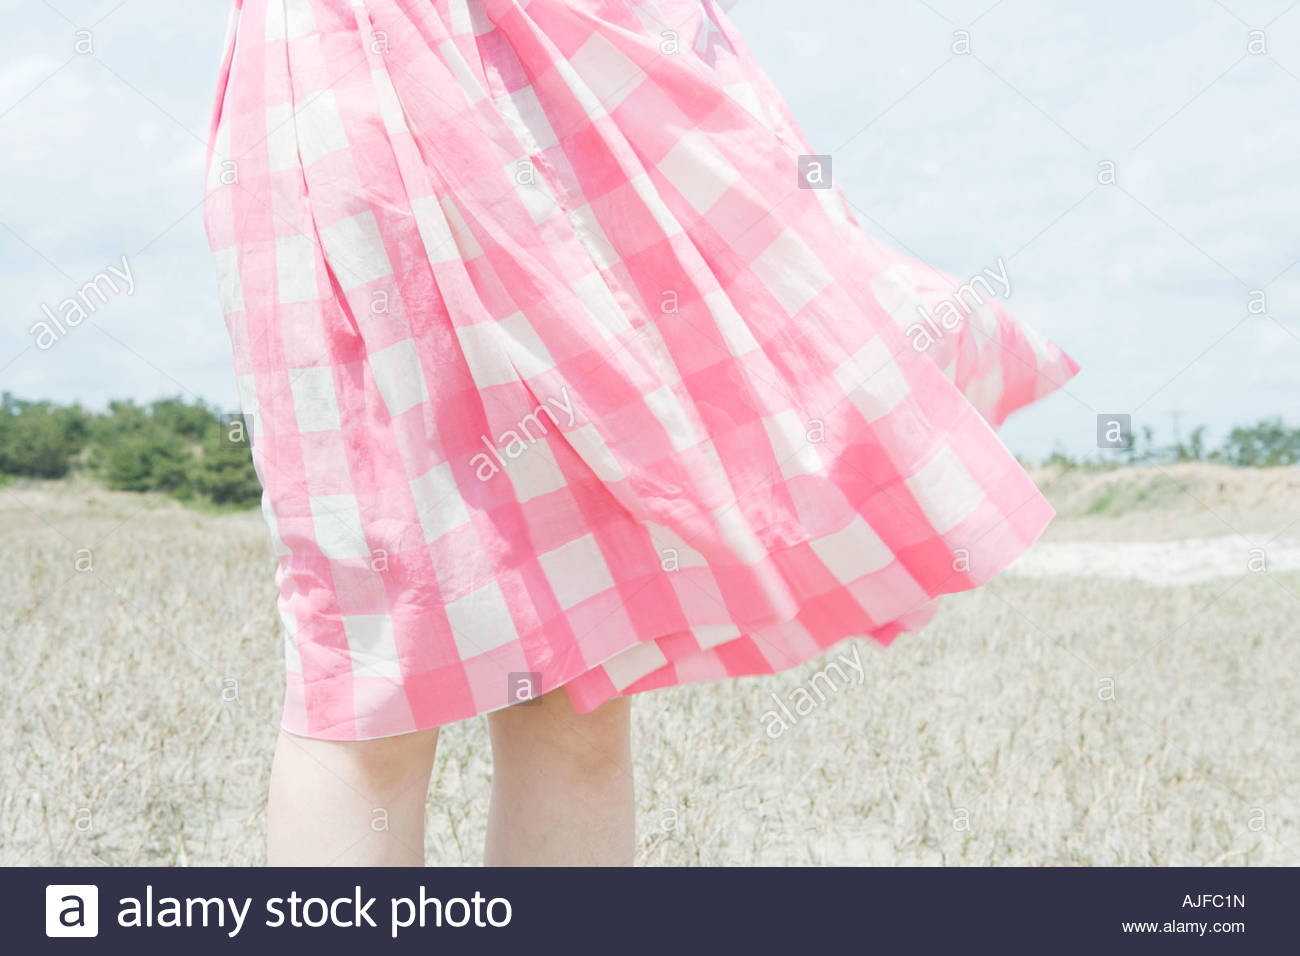 Skirt blowing in breeze - Stock Image